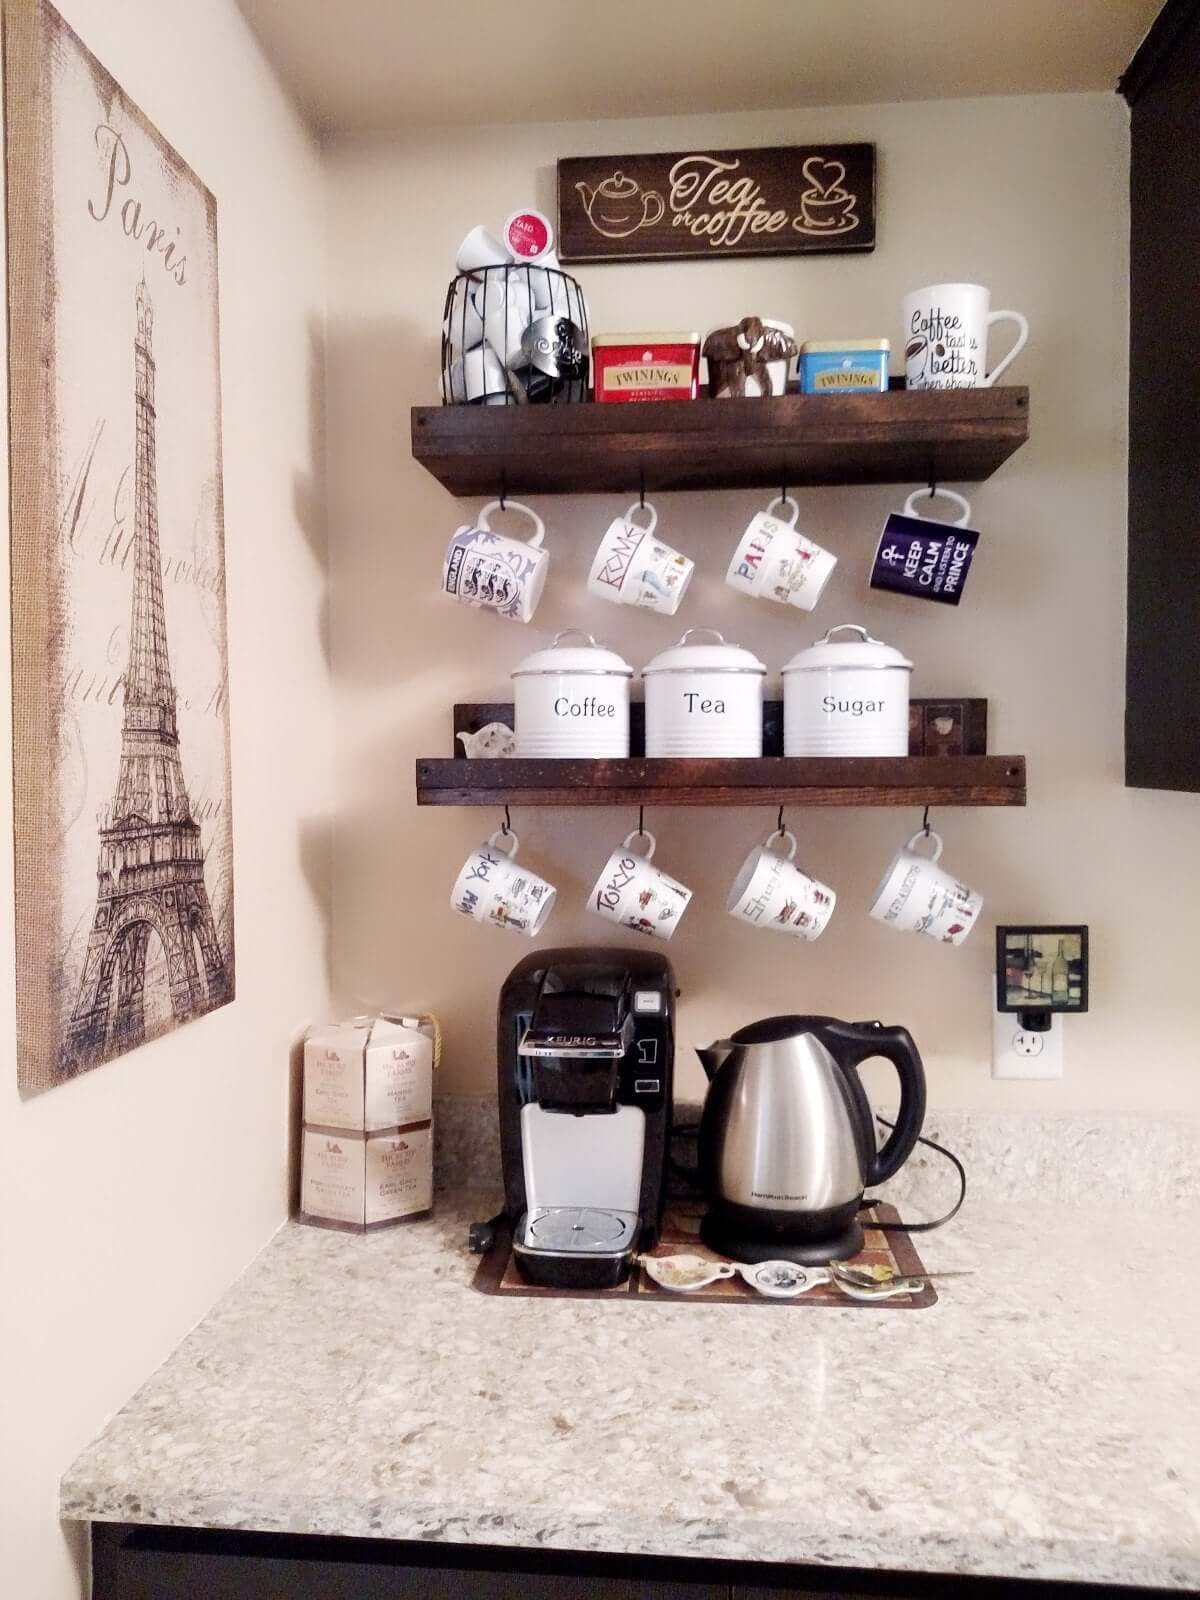 Coffee Trays on the Walls